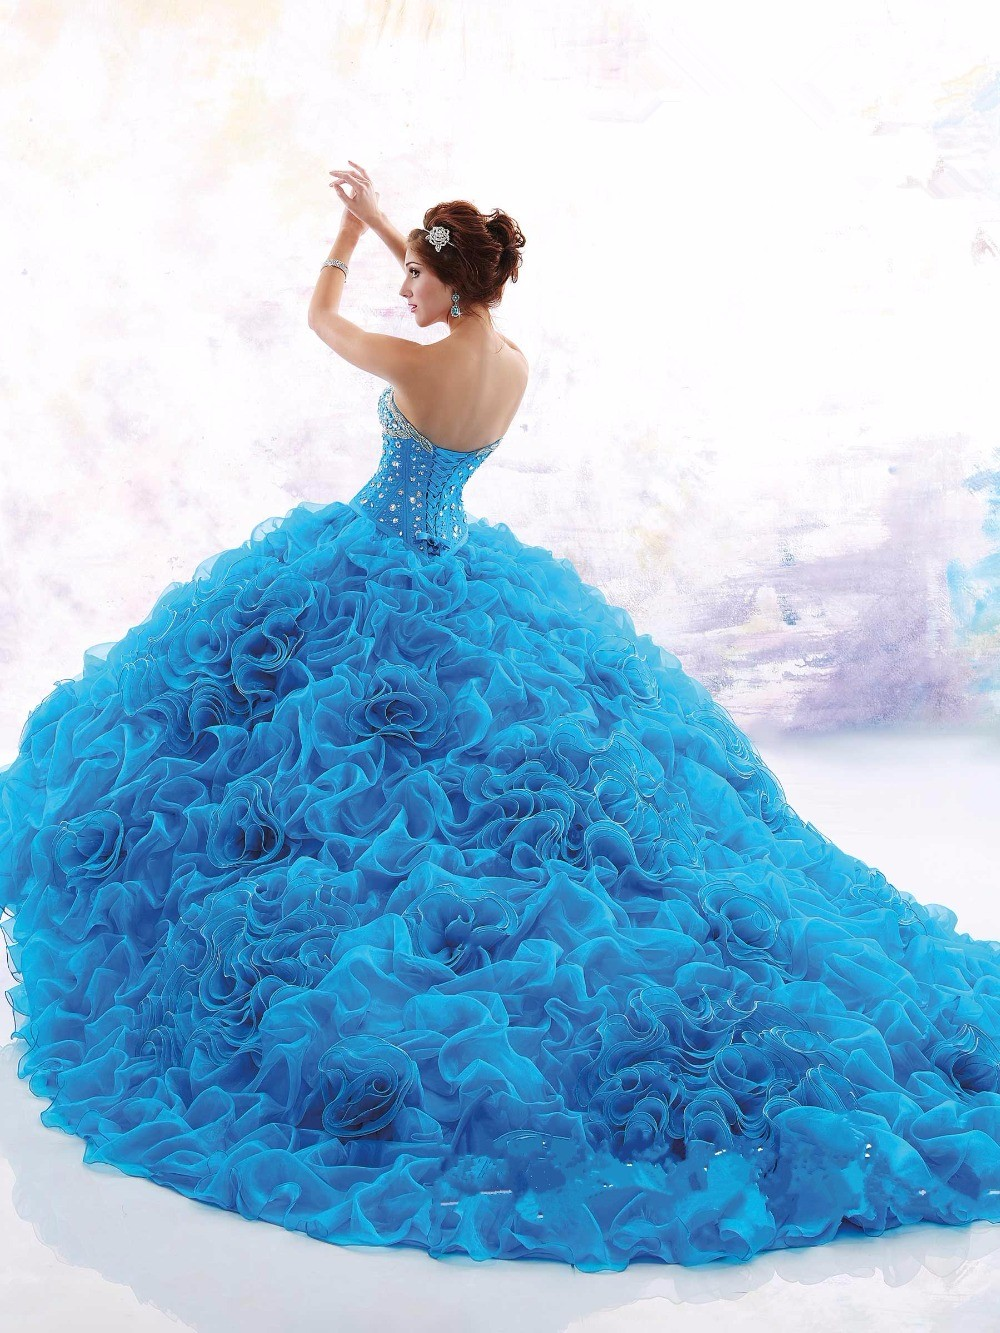 2016-New-Arrival-Free-Shipping-Baby-Blue-Bodice-Corset-Quinceanera-Dresses-Ball-Gown-Yisha-Lady-Custom (2)